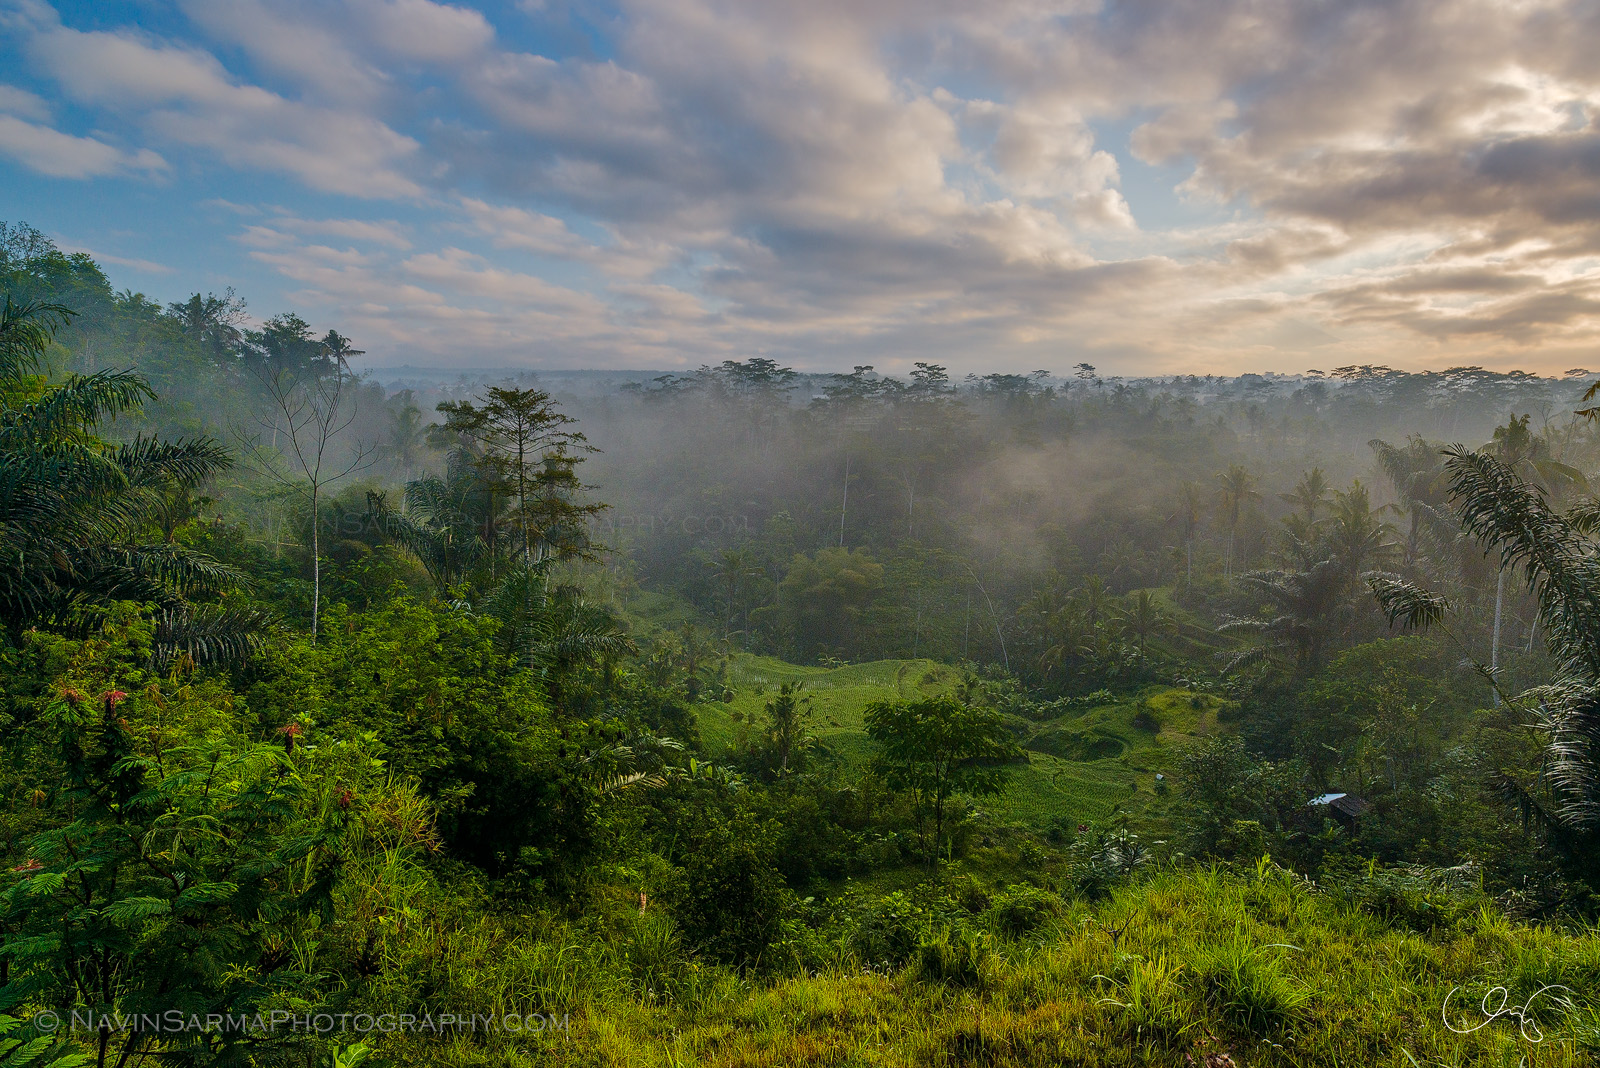 Sunrise at the Rice Field of Ubud Bali